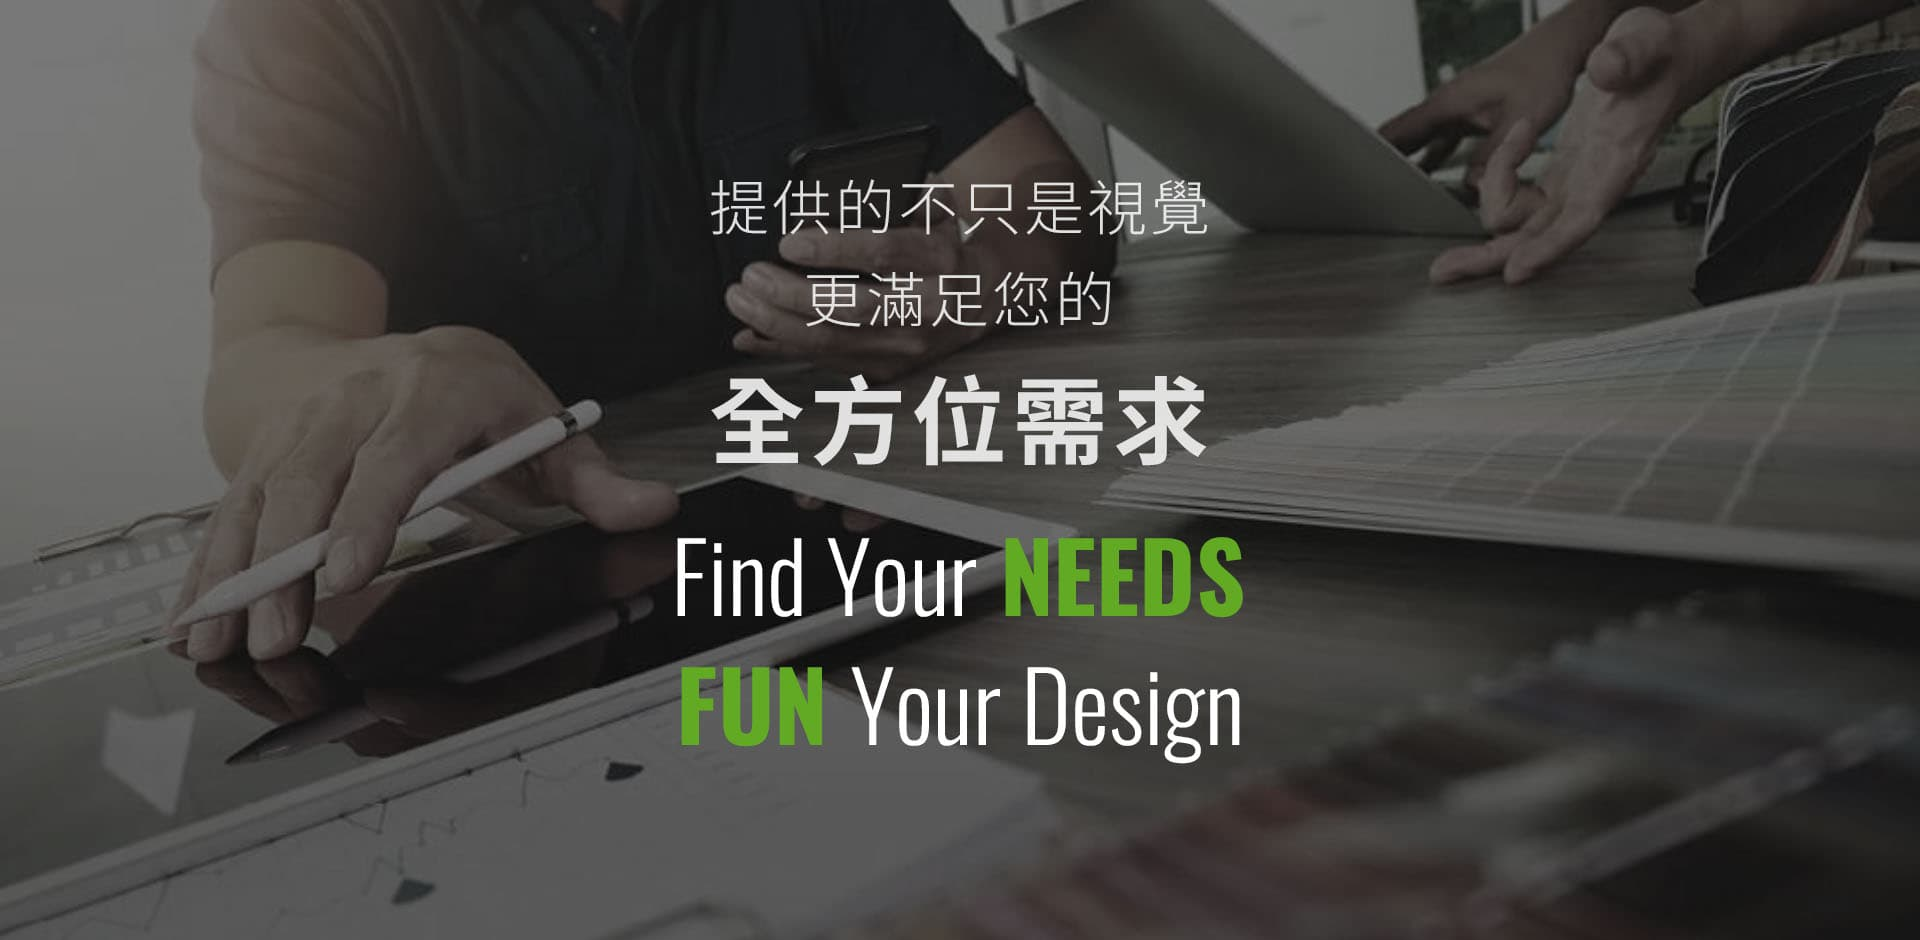 Find Your Needs Fun Your Design